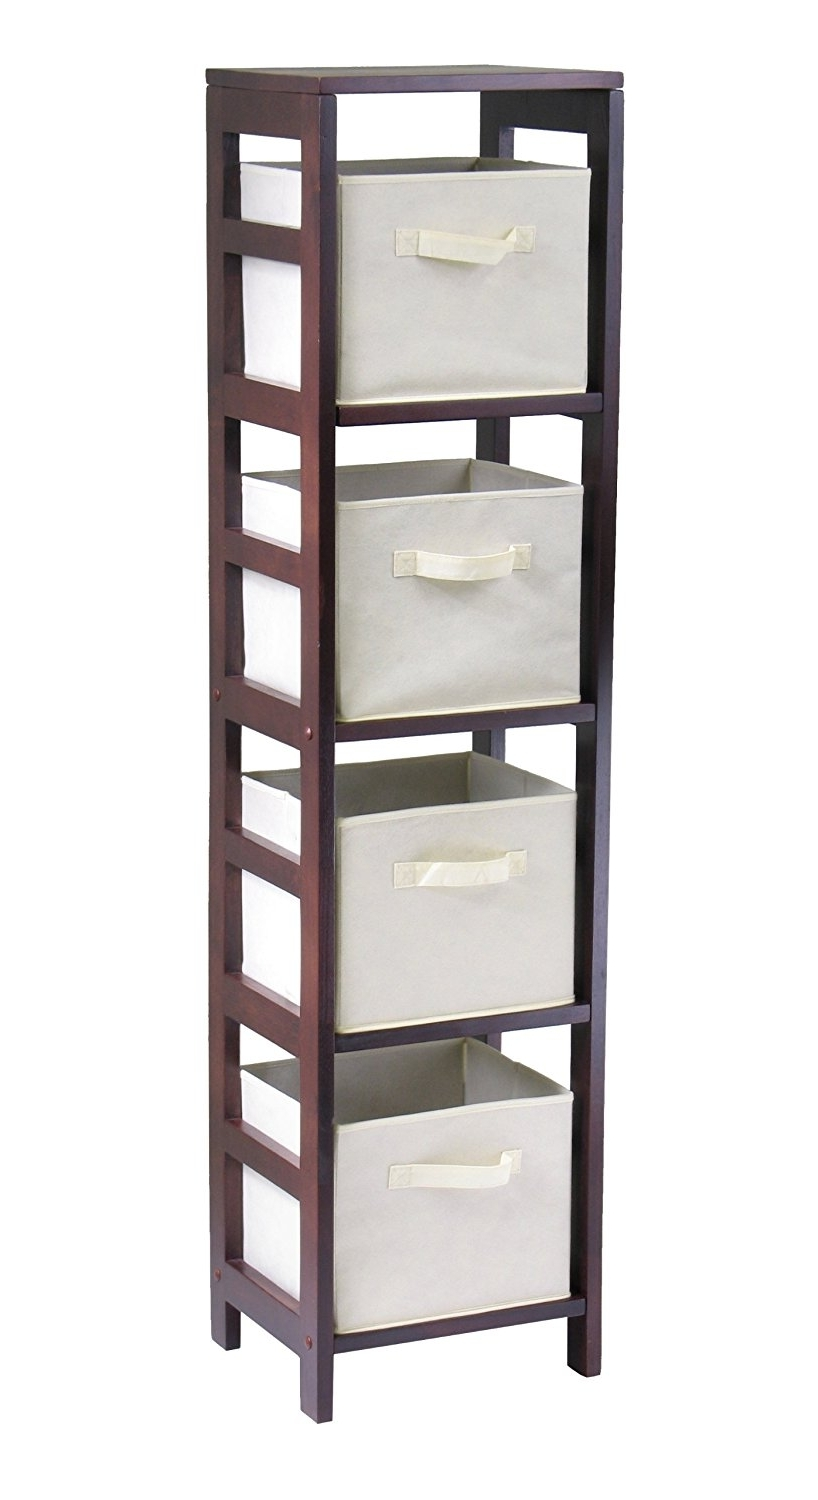 Most Current Very Narrow Shelving Unit With Amazon: Winsome Wood 4 Shelf Narrow Shelving Unit, Espresso (View 9 of 15)